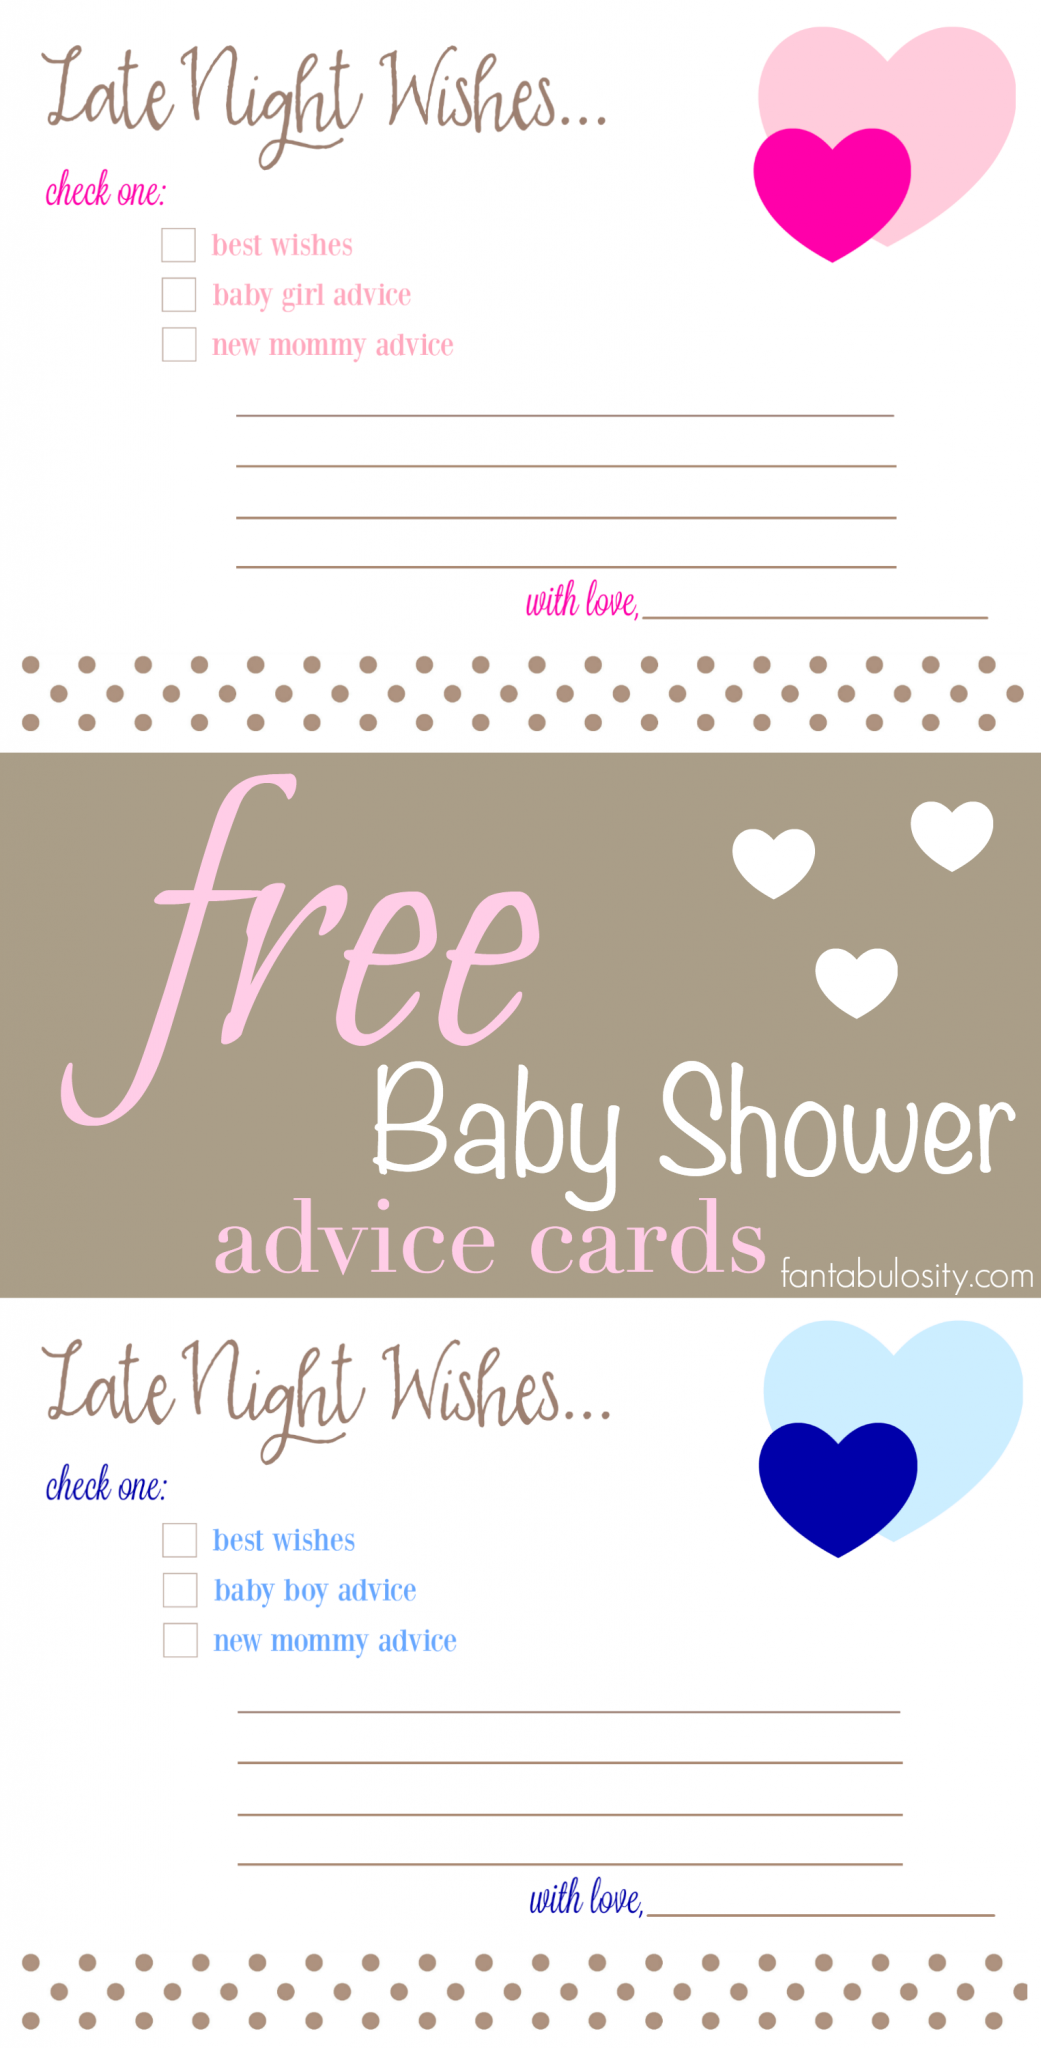 Full Size of Baby Shower:stylish Baby Shower Wishes Picture Inspirations Baby Shower Wishes As Well As Baby Shower Greeting Cards With Baby Shower Wording Plus Baby Shower Gift Ideas Together With Baby Shower Gift List